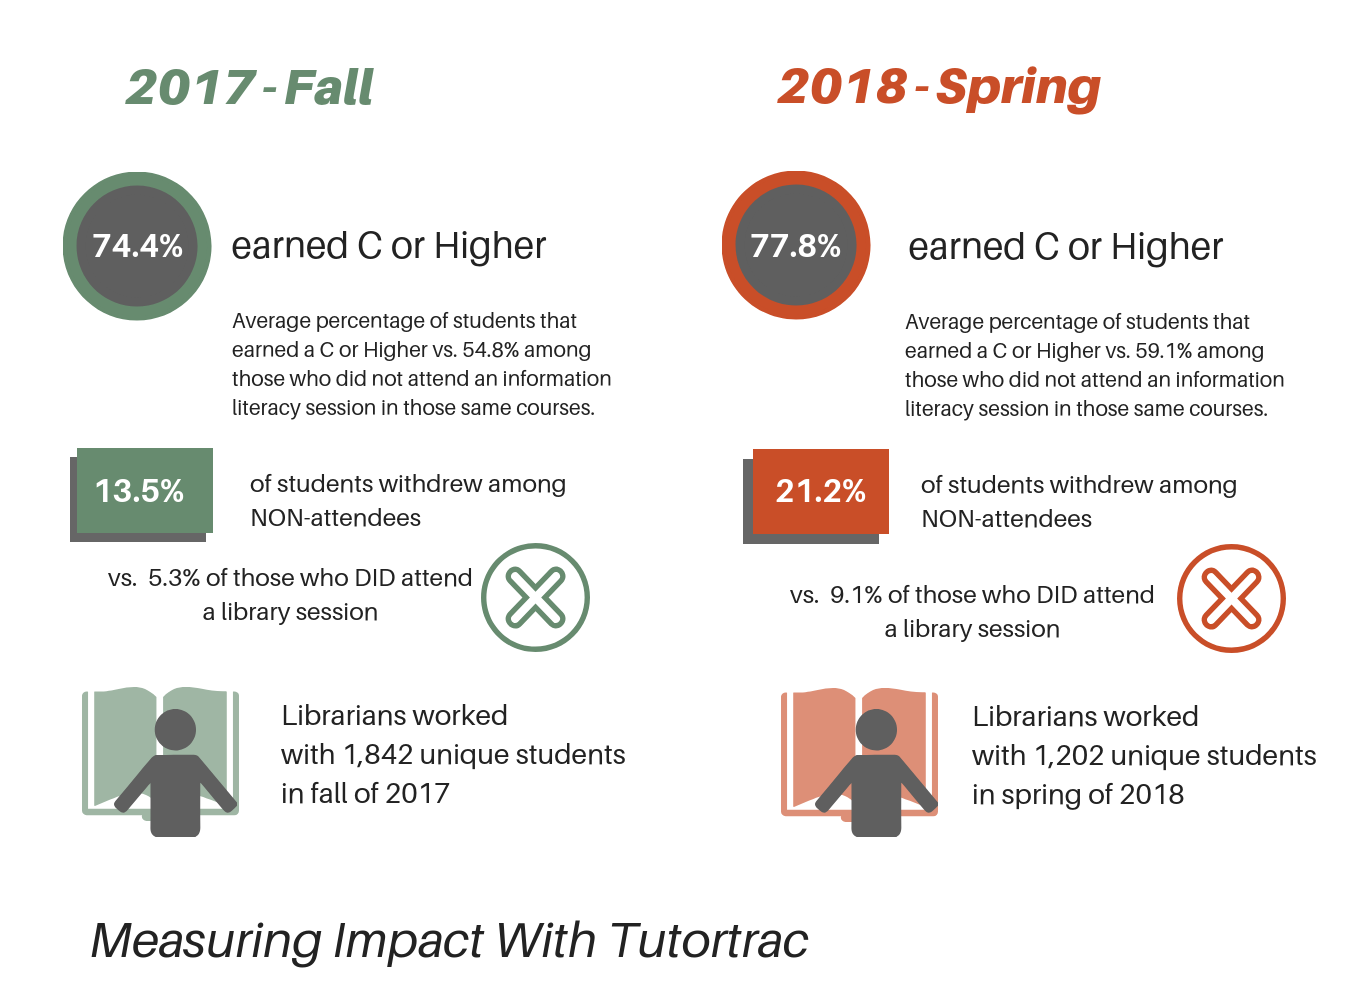 Image: Tutortrac data for 2017 fall and 2018 spring